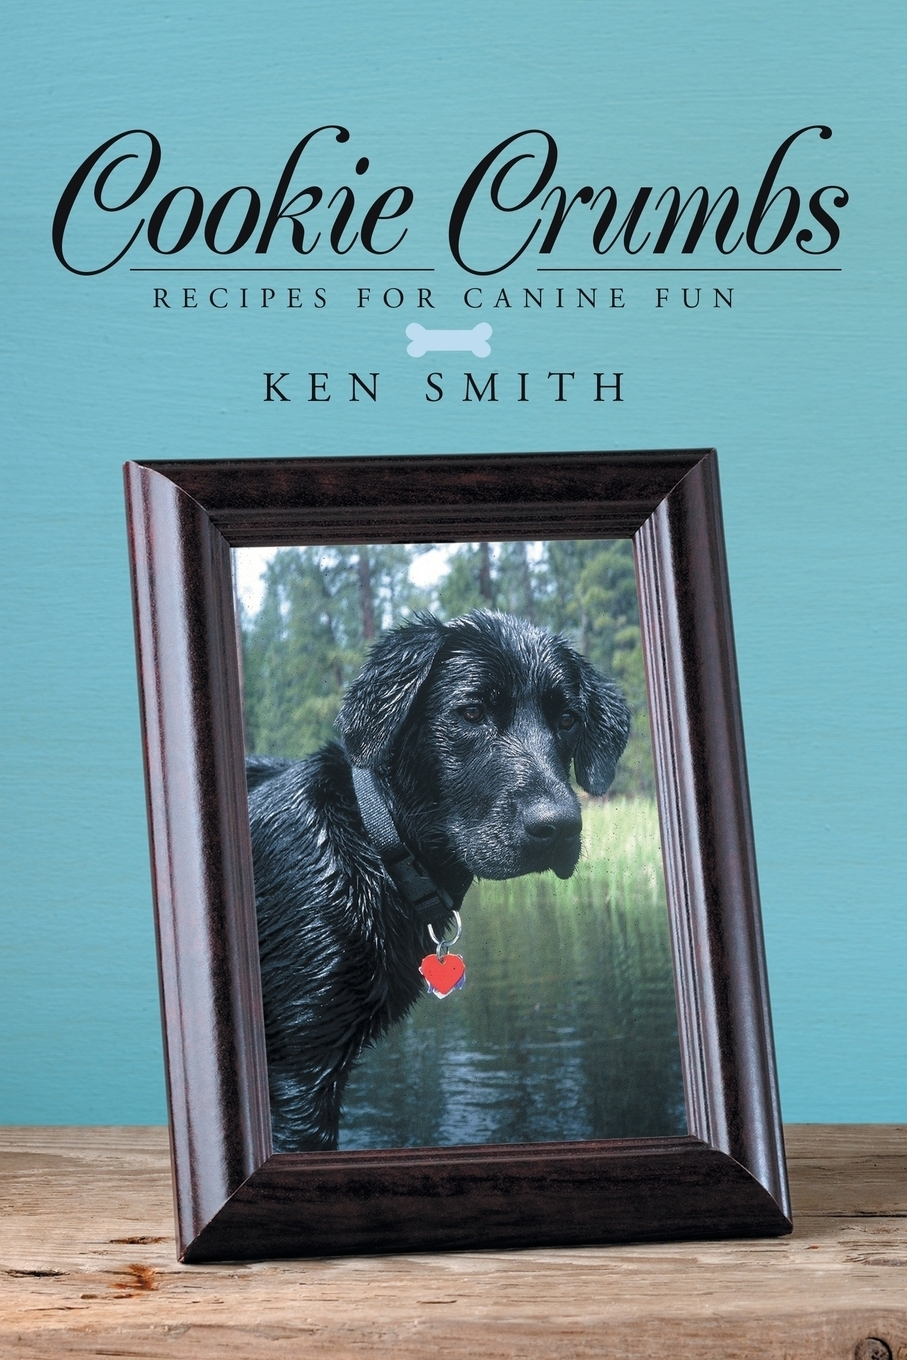 Cookie Crumbs. Recipes for Canine Fun. Ken Smith